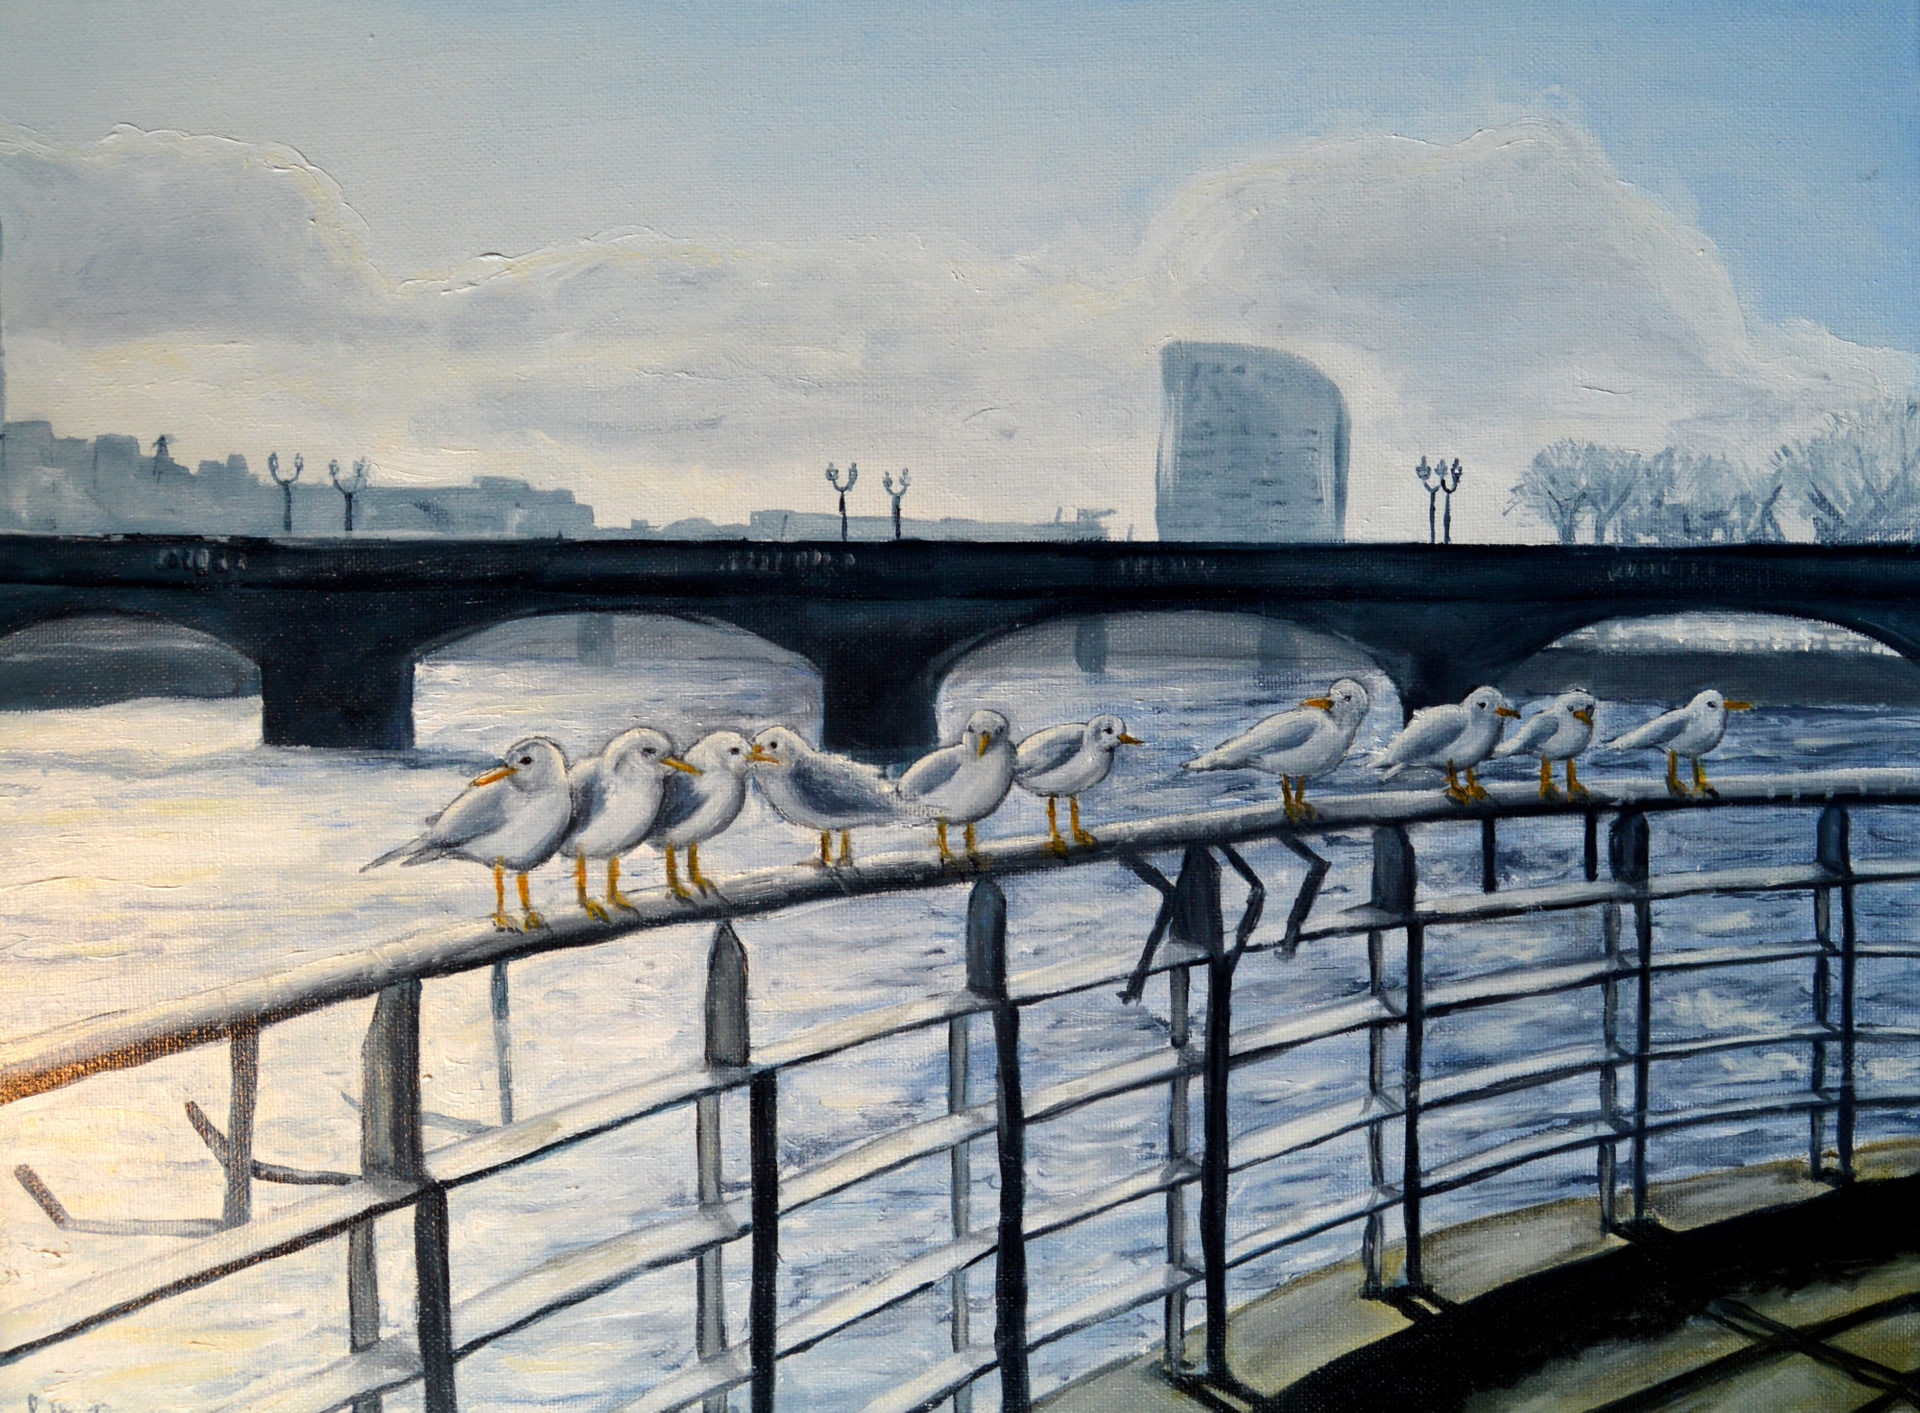 Seagulls on the Shannon